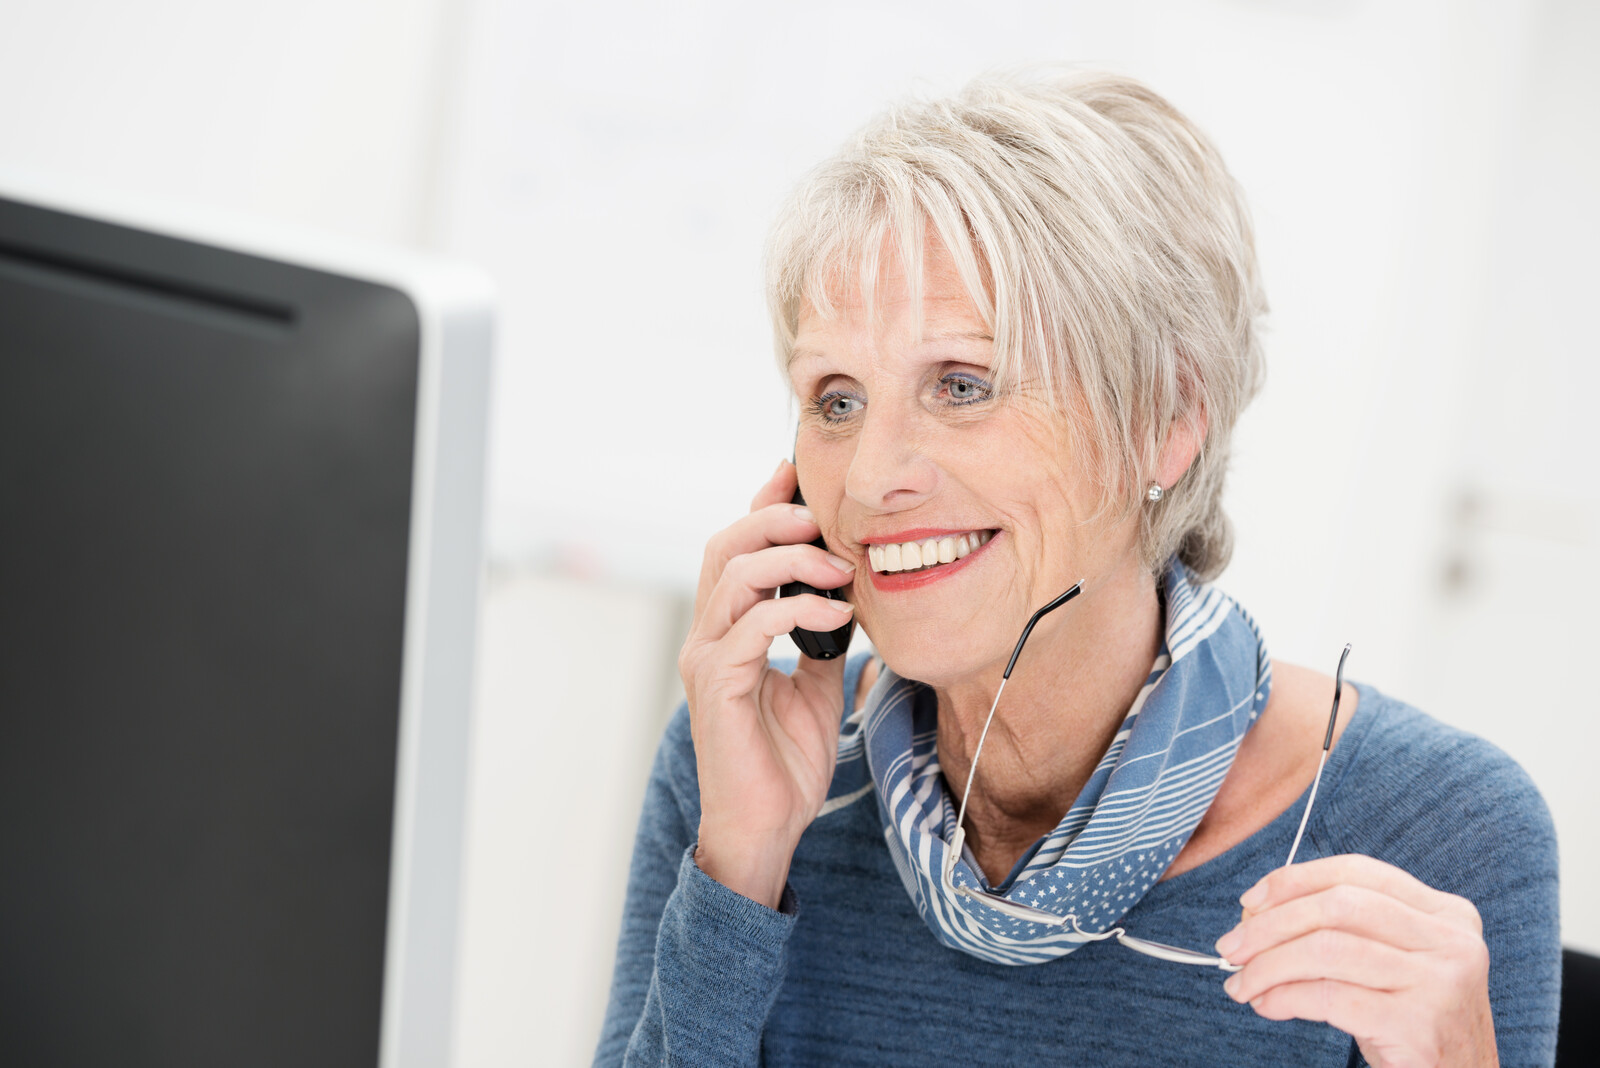 Senior woman smiling while on the phone looking at a computer screen and holding her glasses.